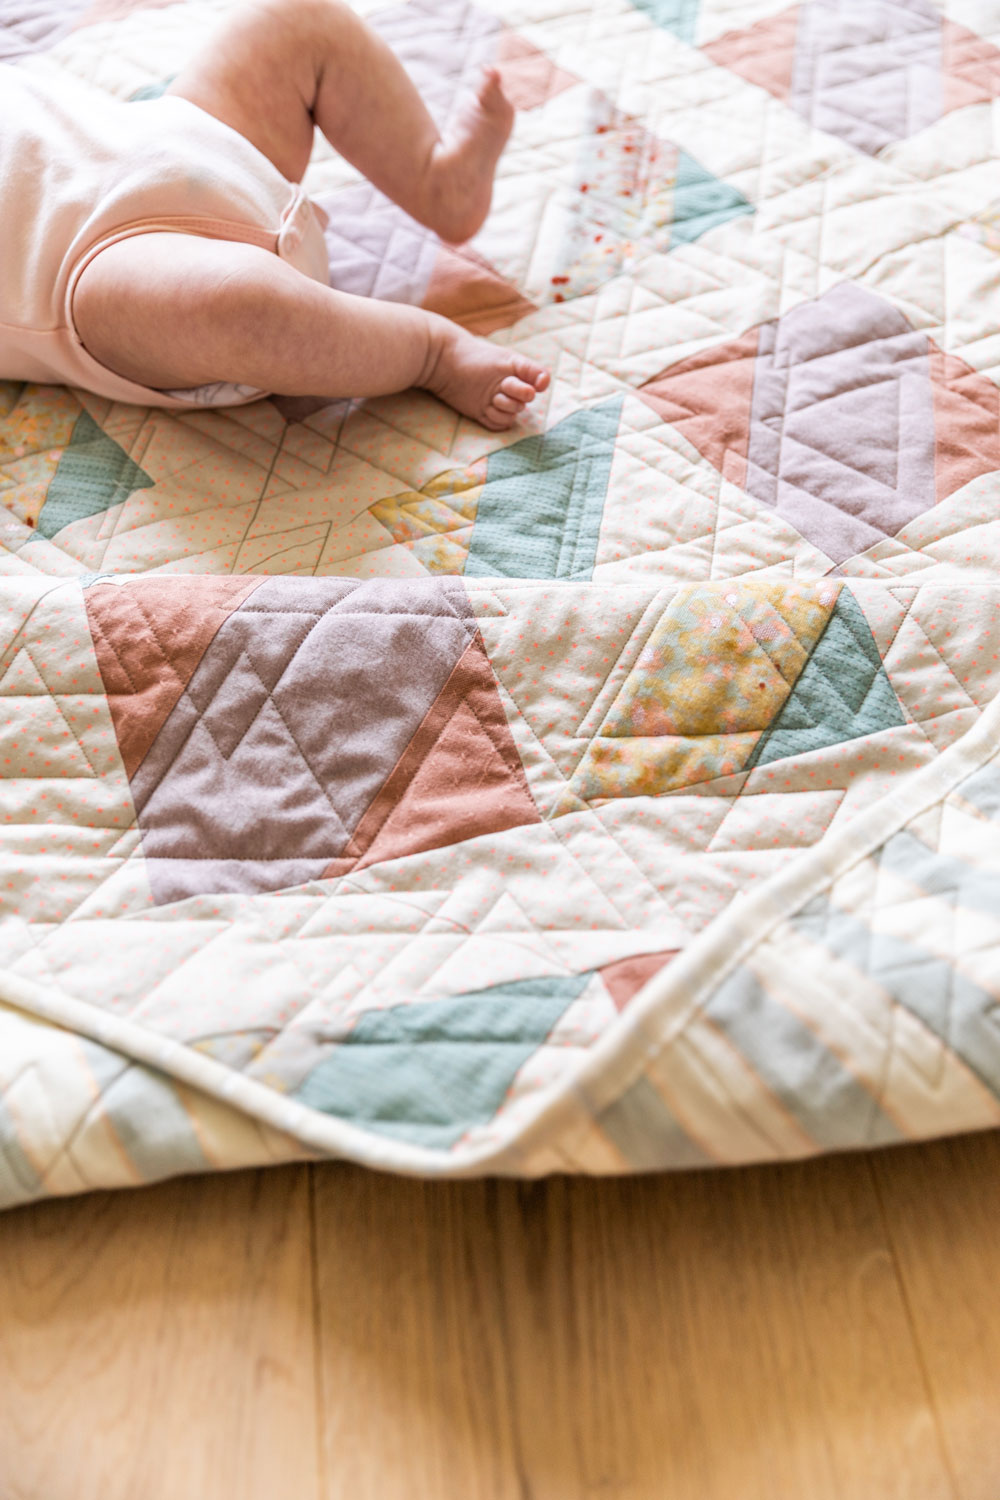 The New Horizons quilt pattern uses large quilt blocks, making it the perfect quilt pattern for double gauze! suzyquilts.com #babyquilt #doublegauze